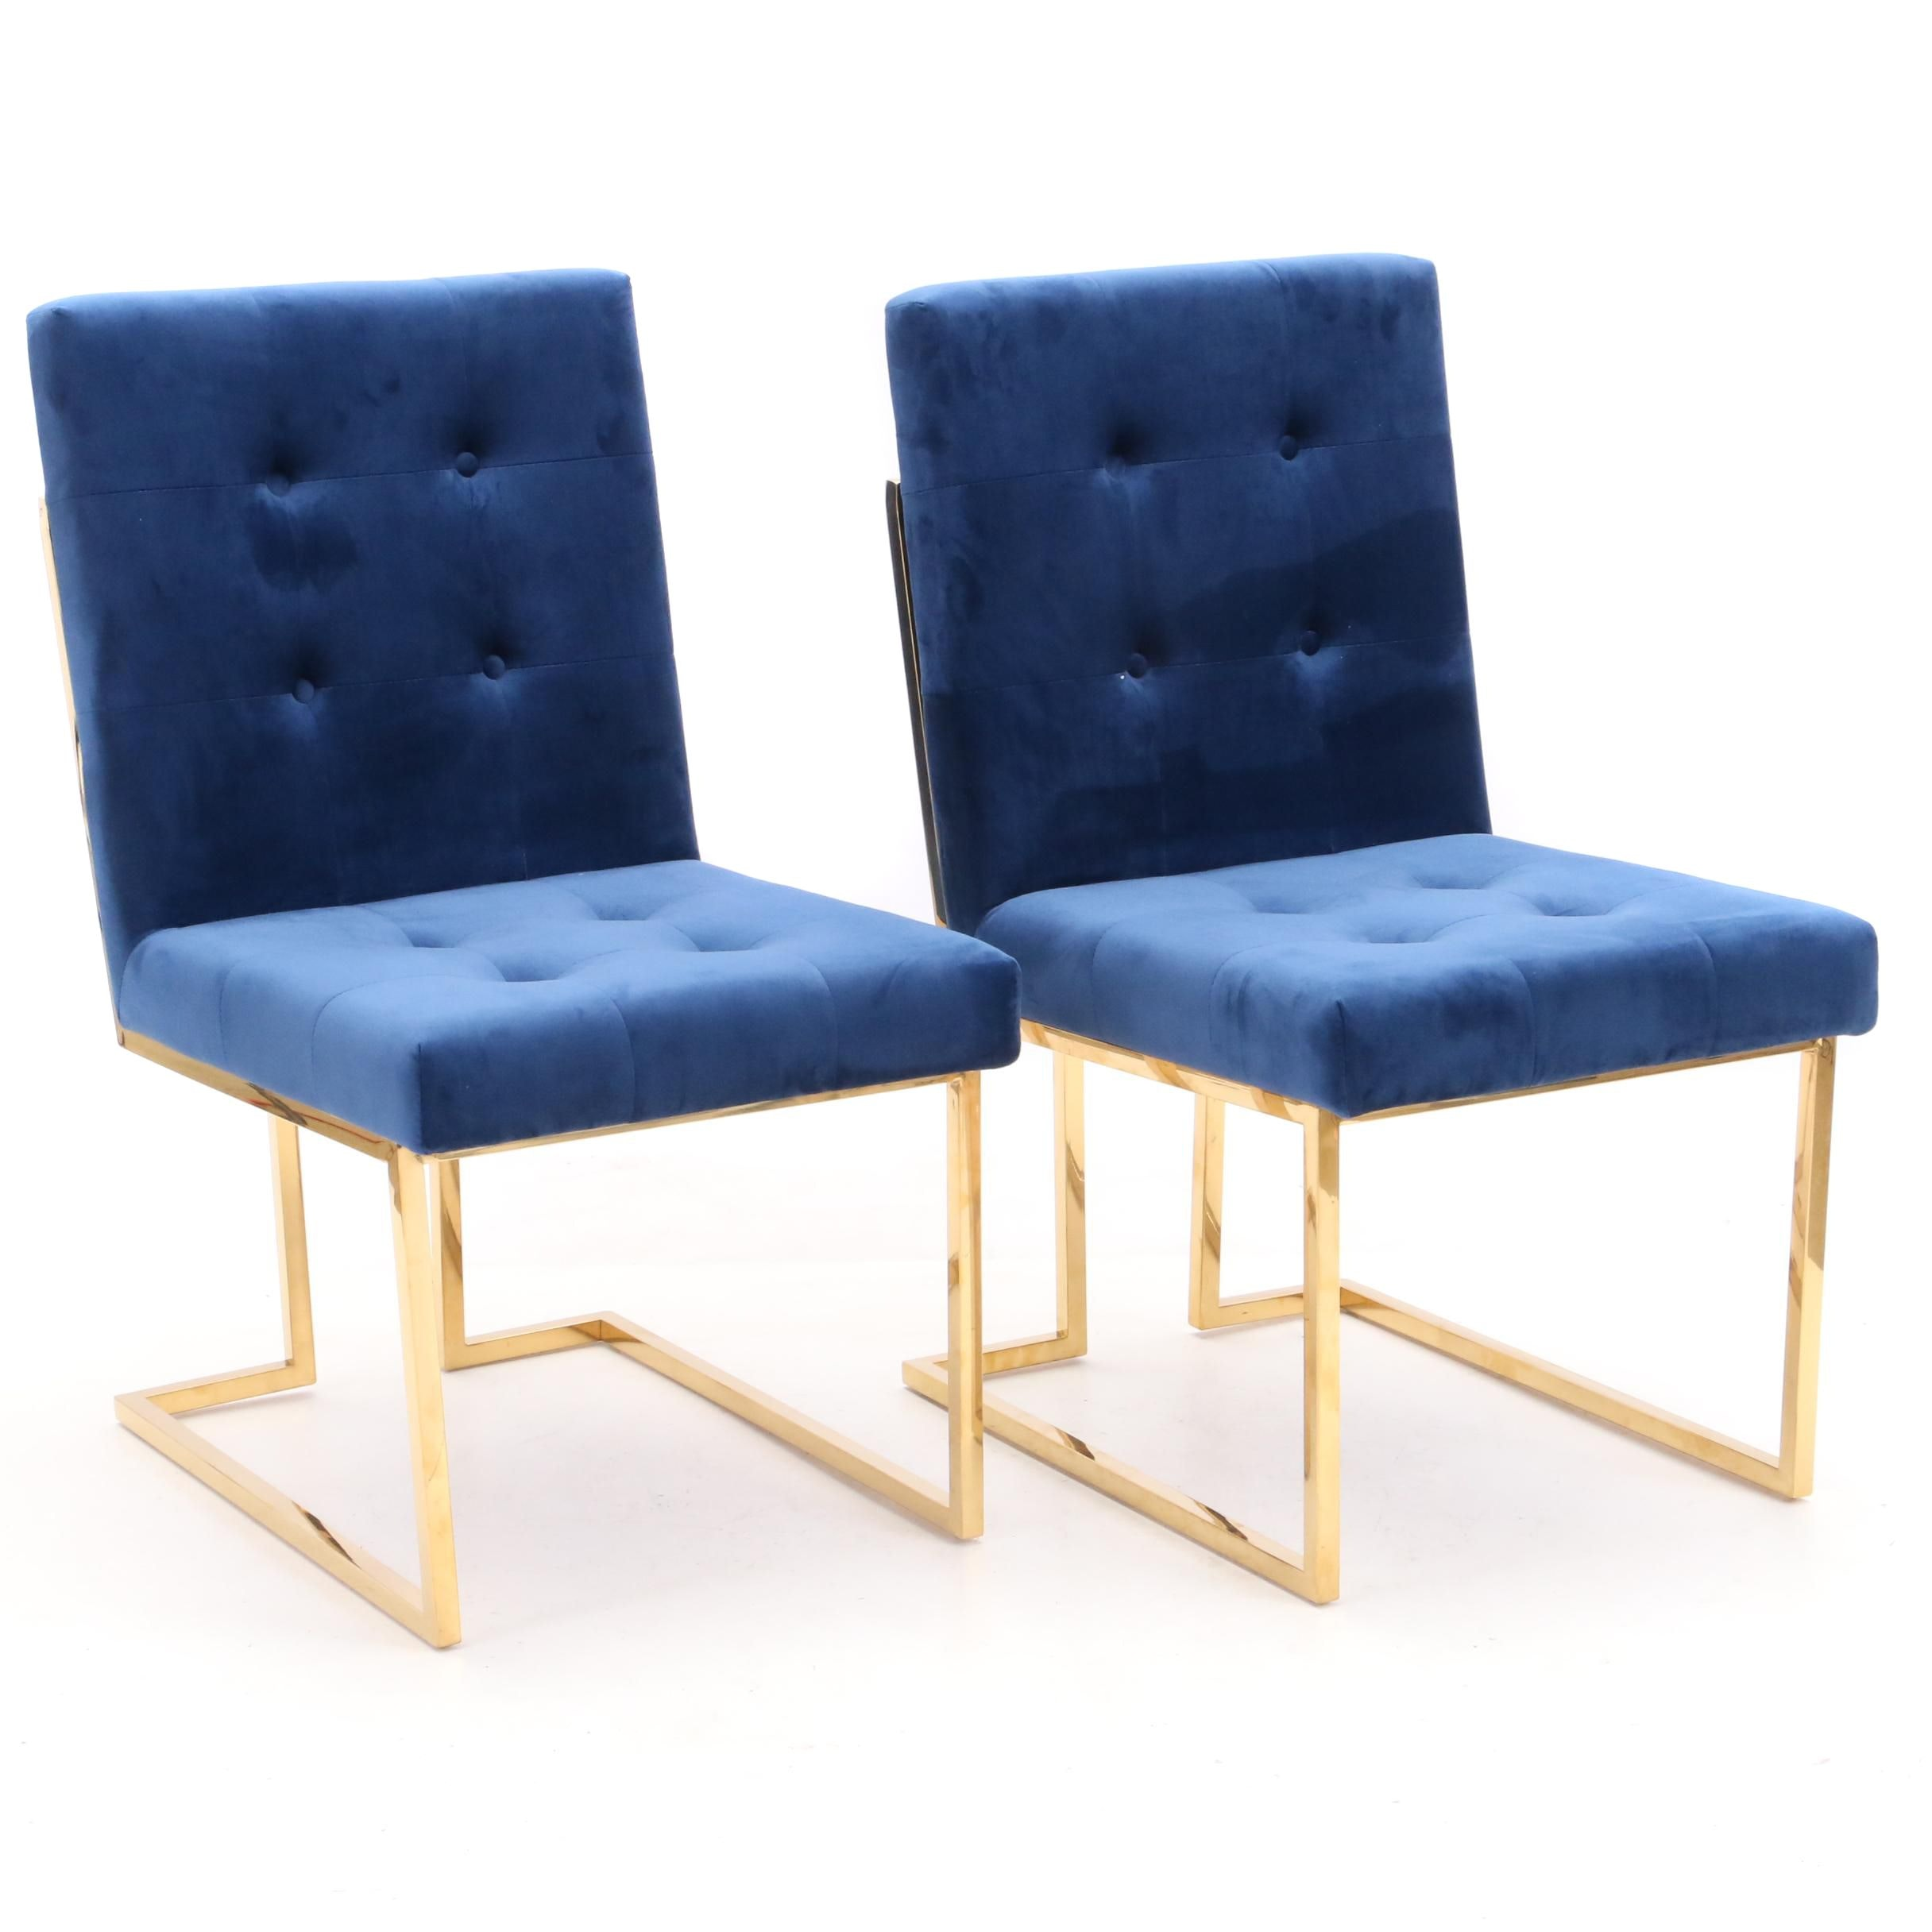 """Upholstered """"Pierre"""" Chairs by Meridian"""